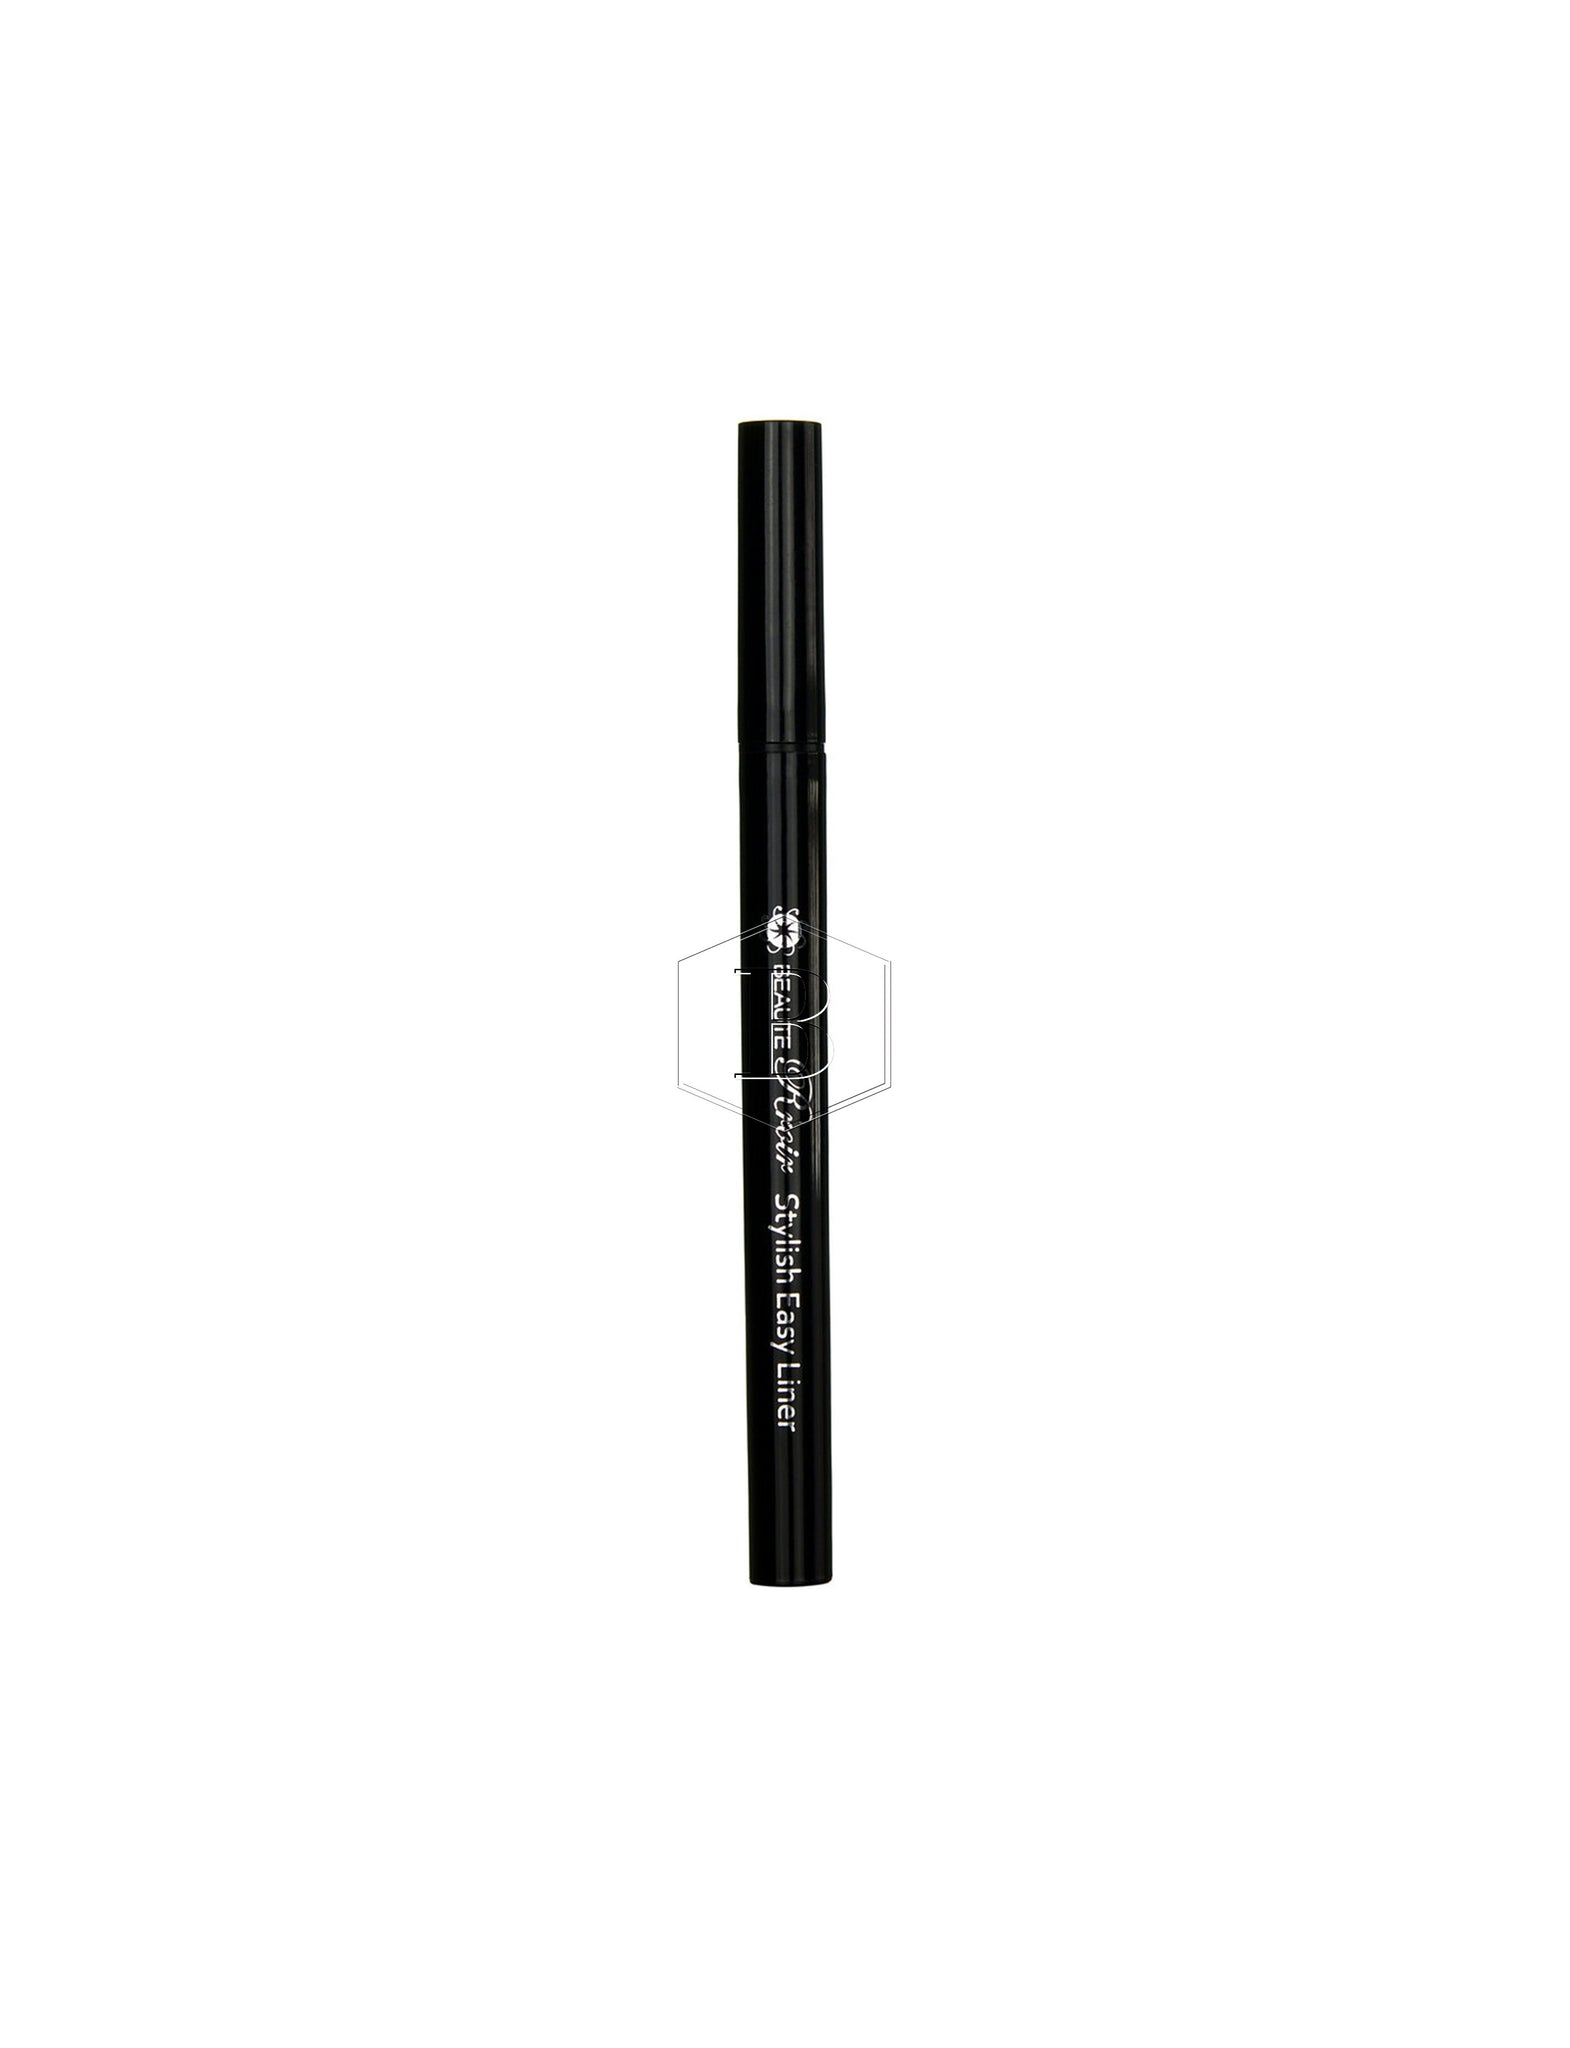 Beautte Rroir Liquid Eyeliner